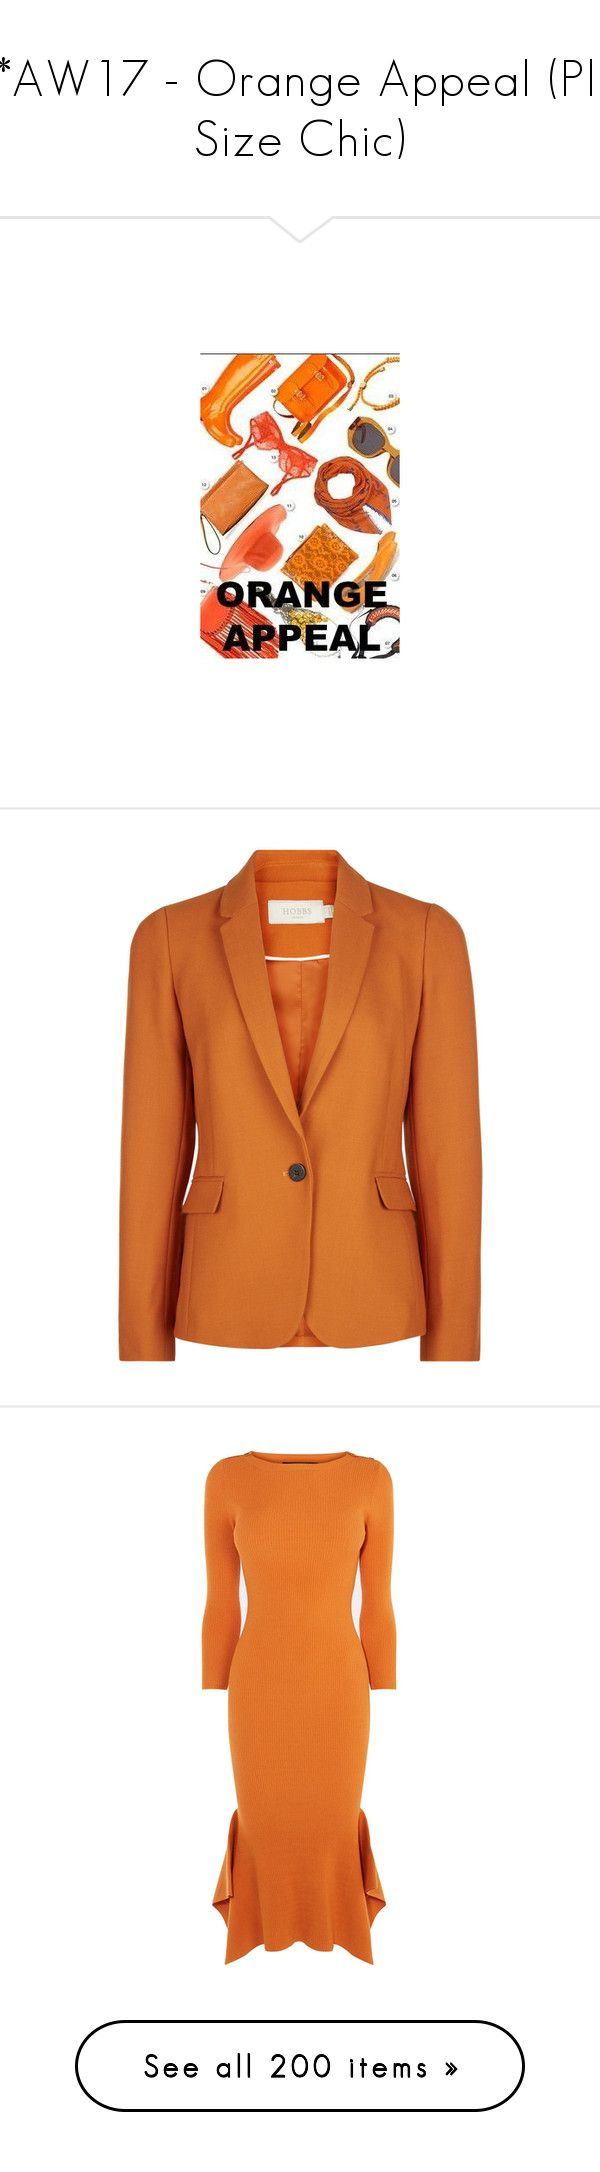 """""""***AW17 - Orange Appeal (Plus Size Chic)"""" by foolsuk ❤ liked on Polyvore featuring outerwear, jackets, print jacket, tailored jacket, long sleeve jacket, lightweight jacket, orange jacket, dresses, floor length dresses and print maxi dress"""